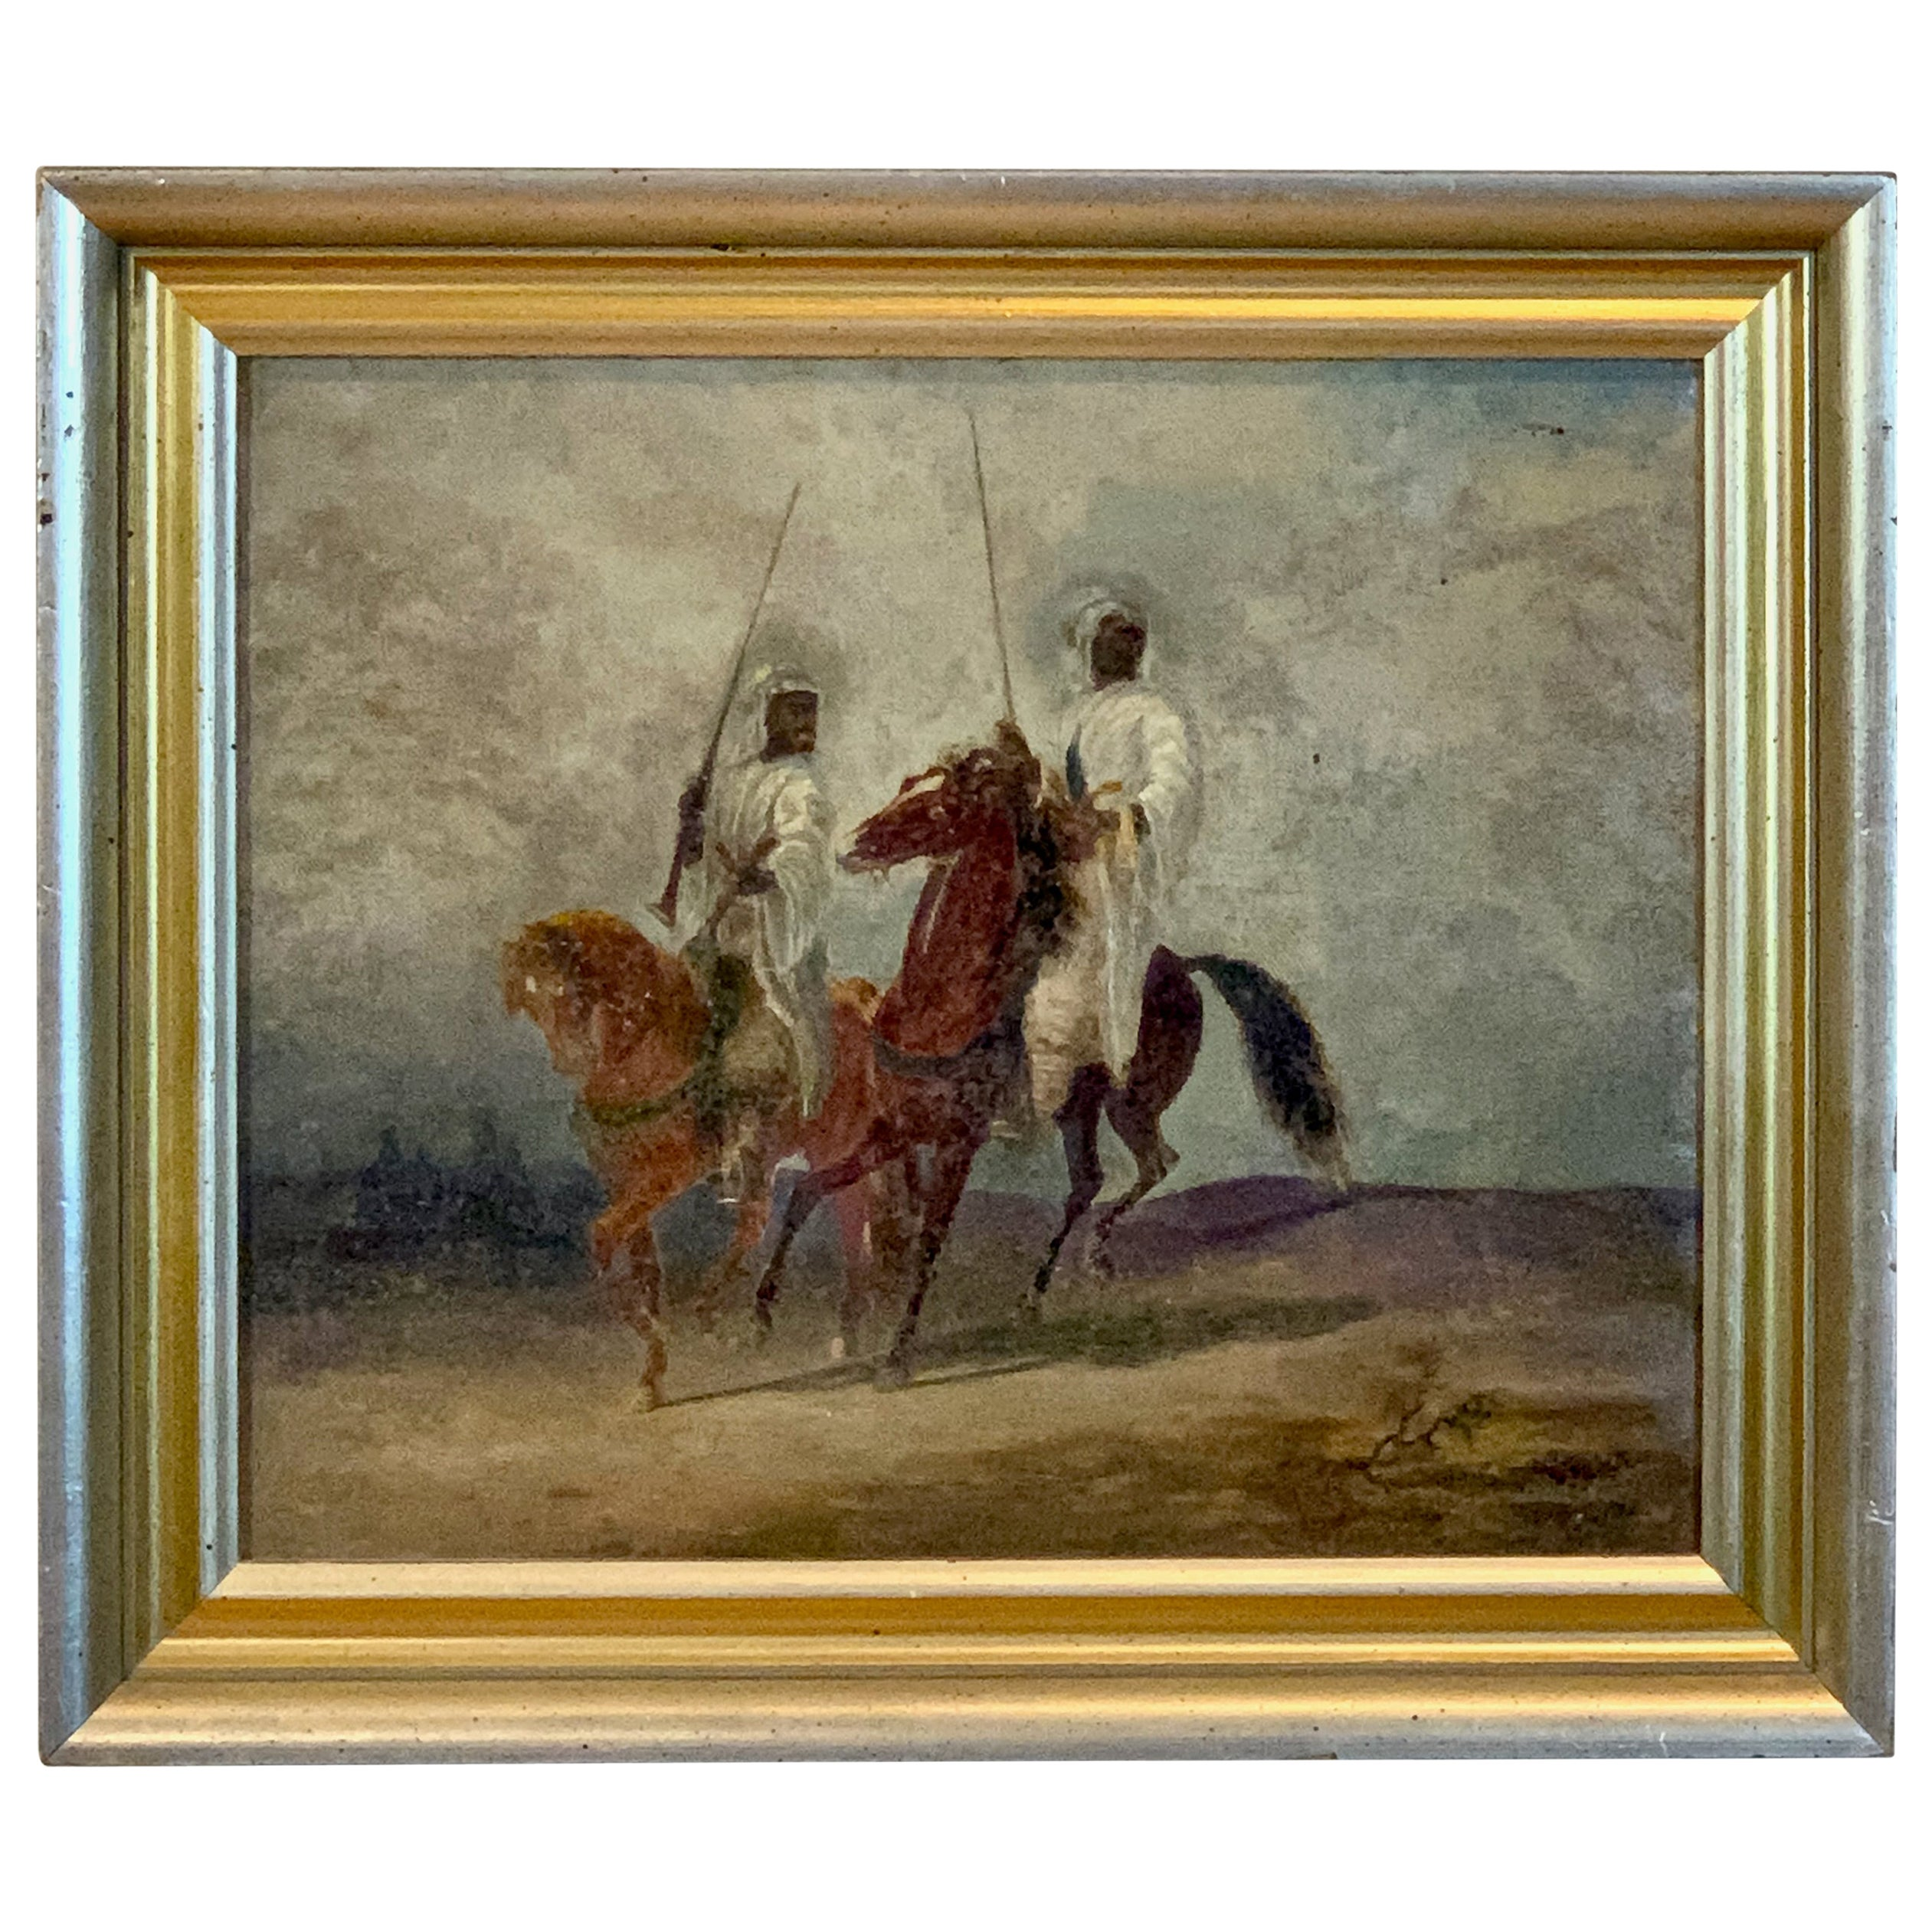 Early 20th Century Oil on Canvas Painting of Bedouins on Horseback